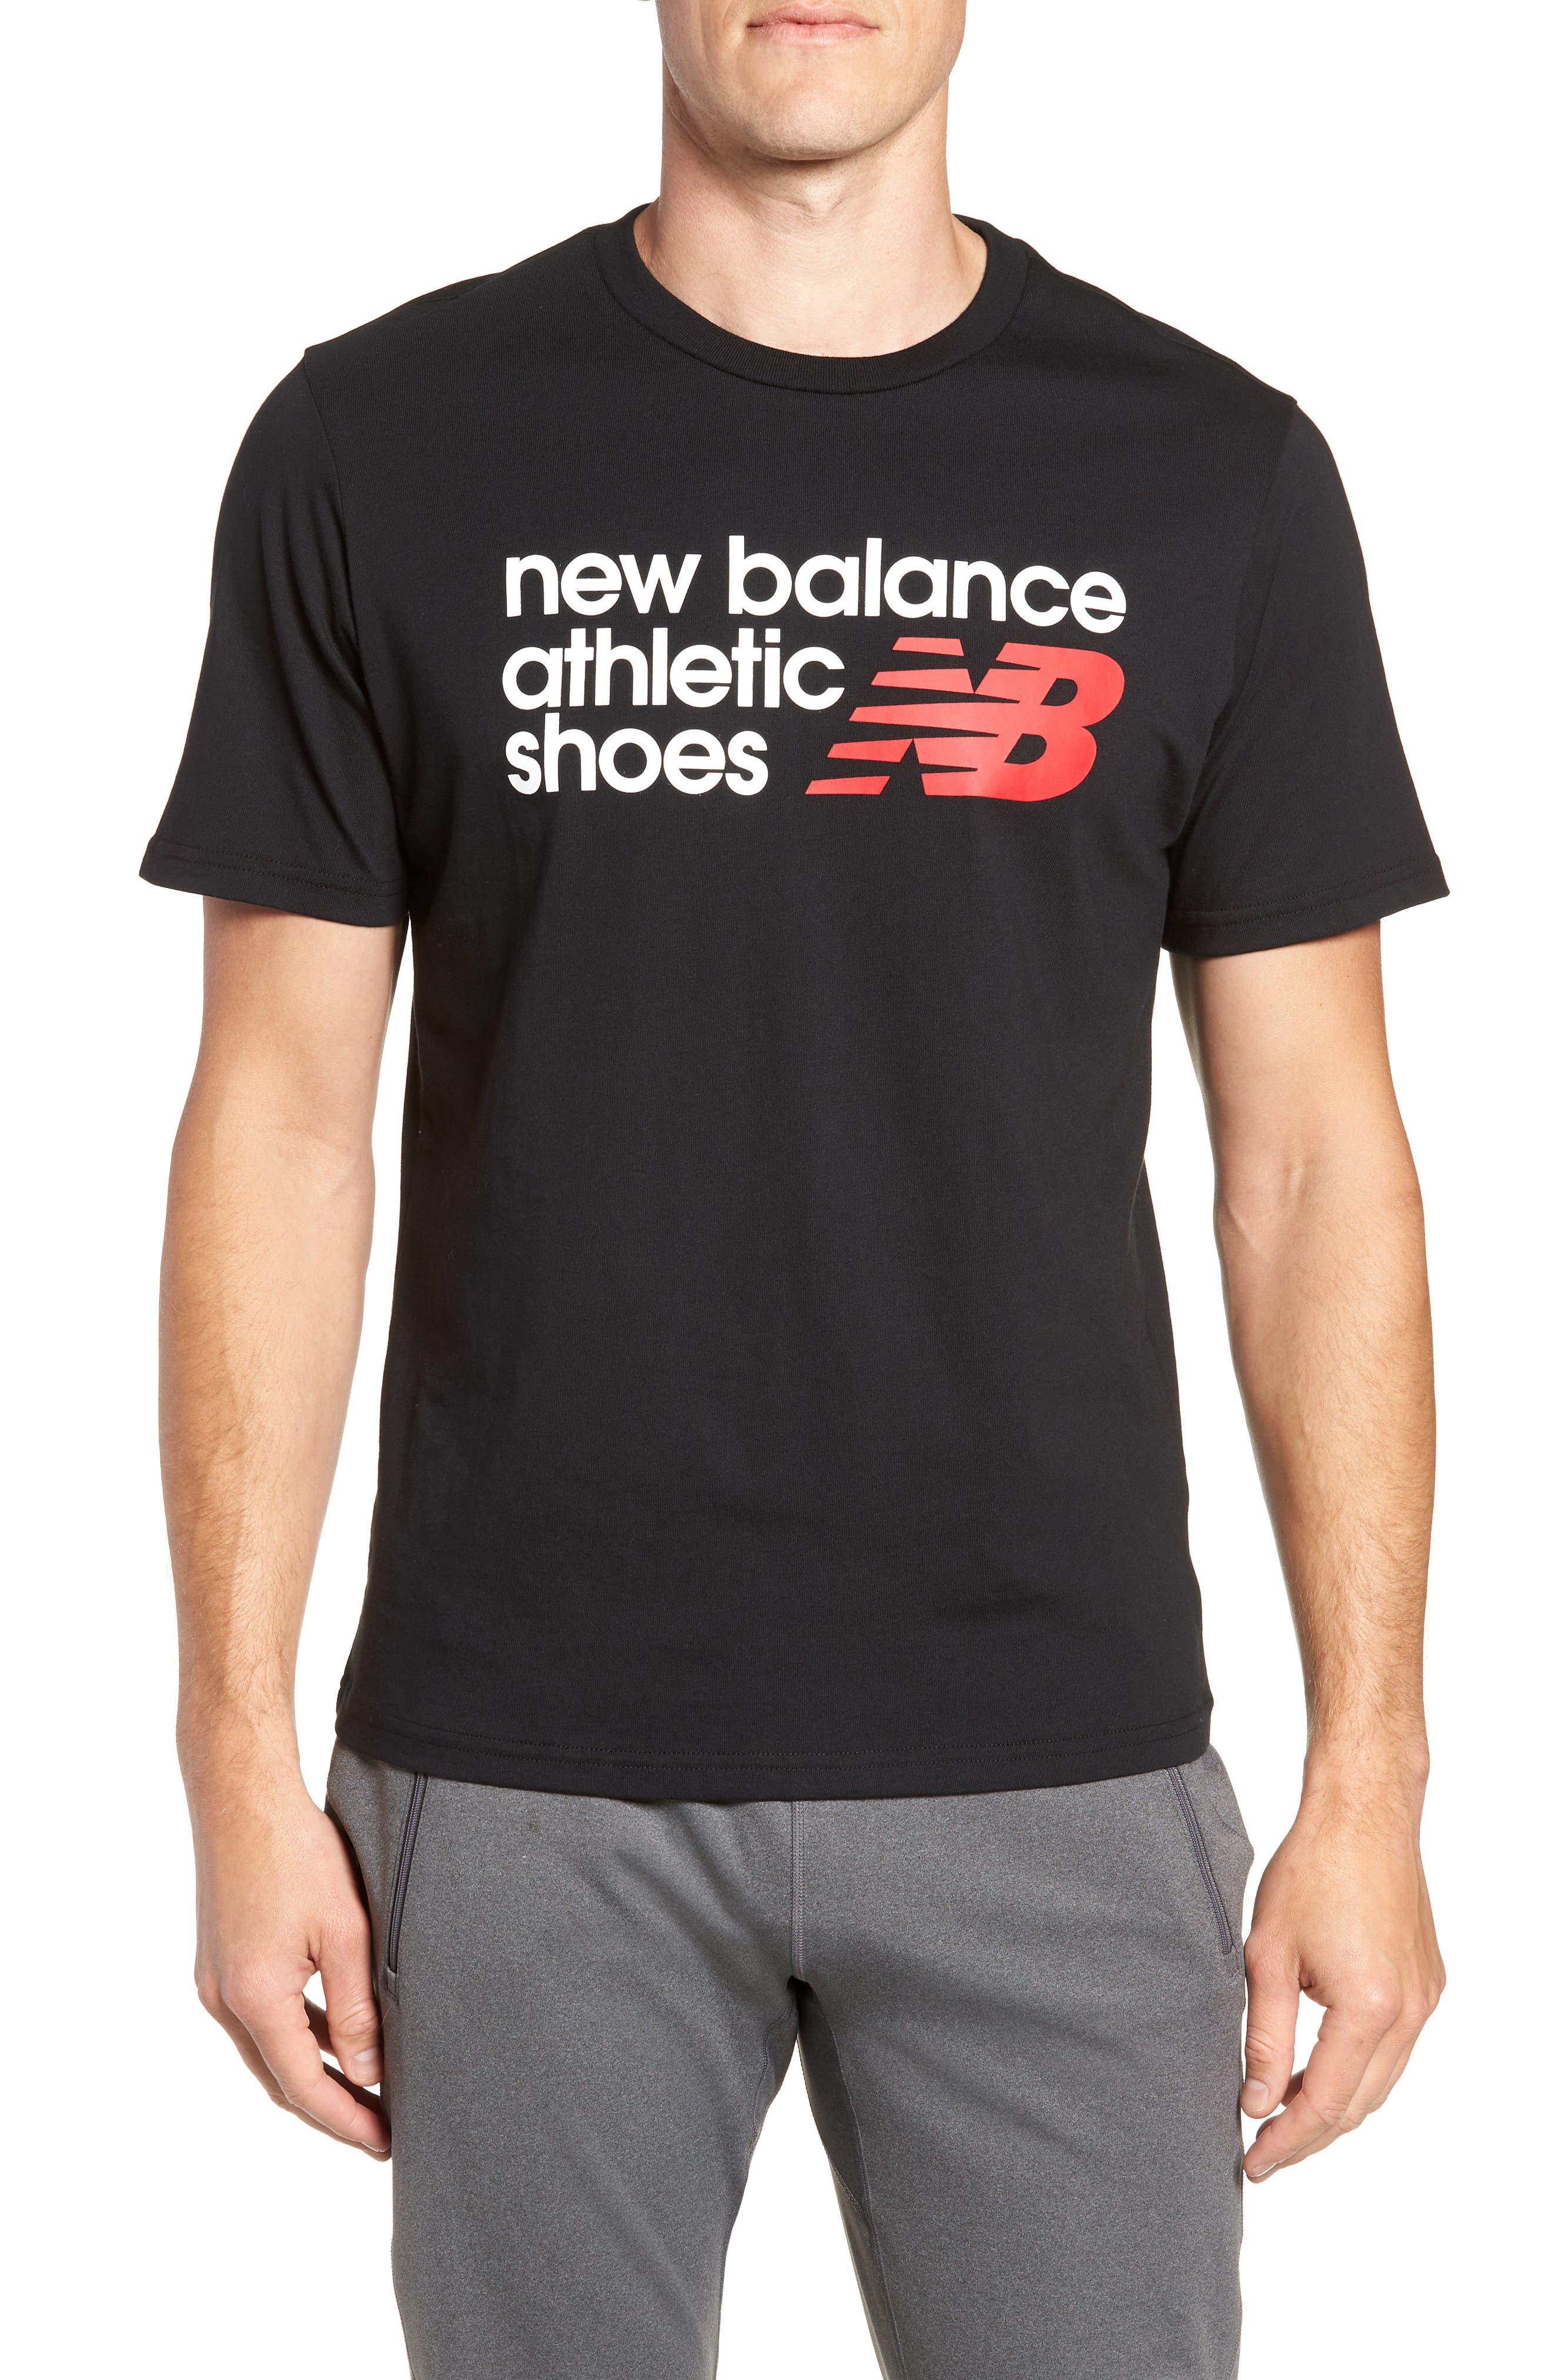 New Balance Nb Shoe Box Graphic T-Shirt, Black